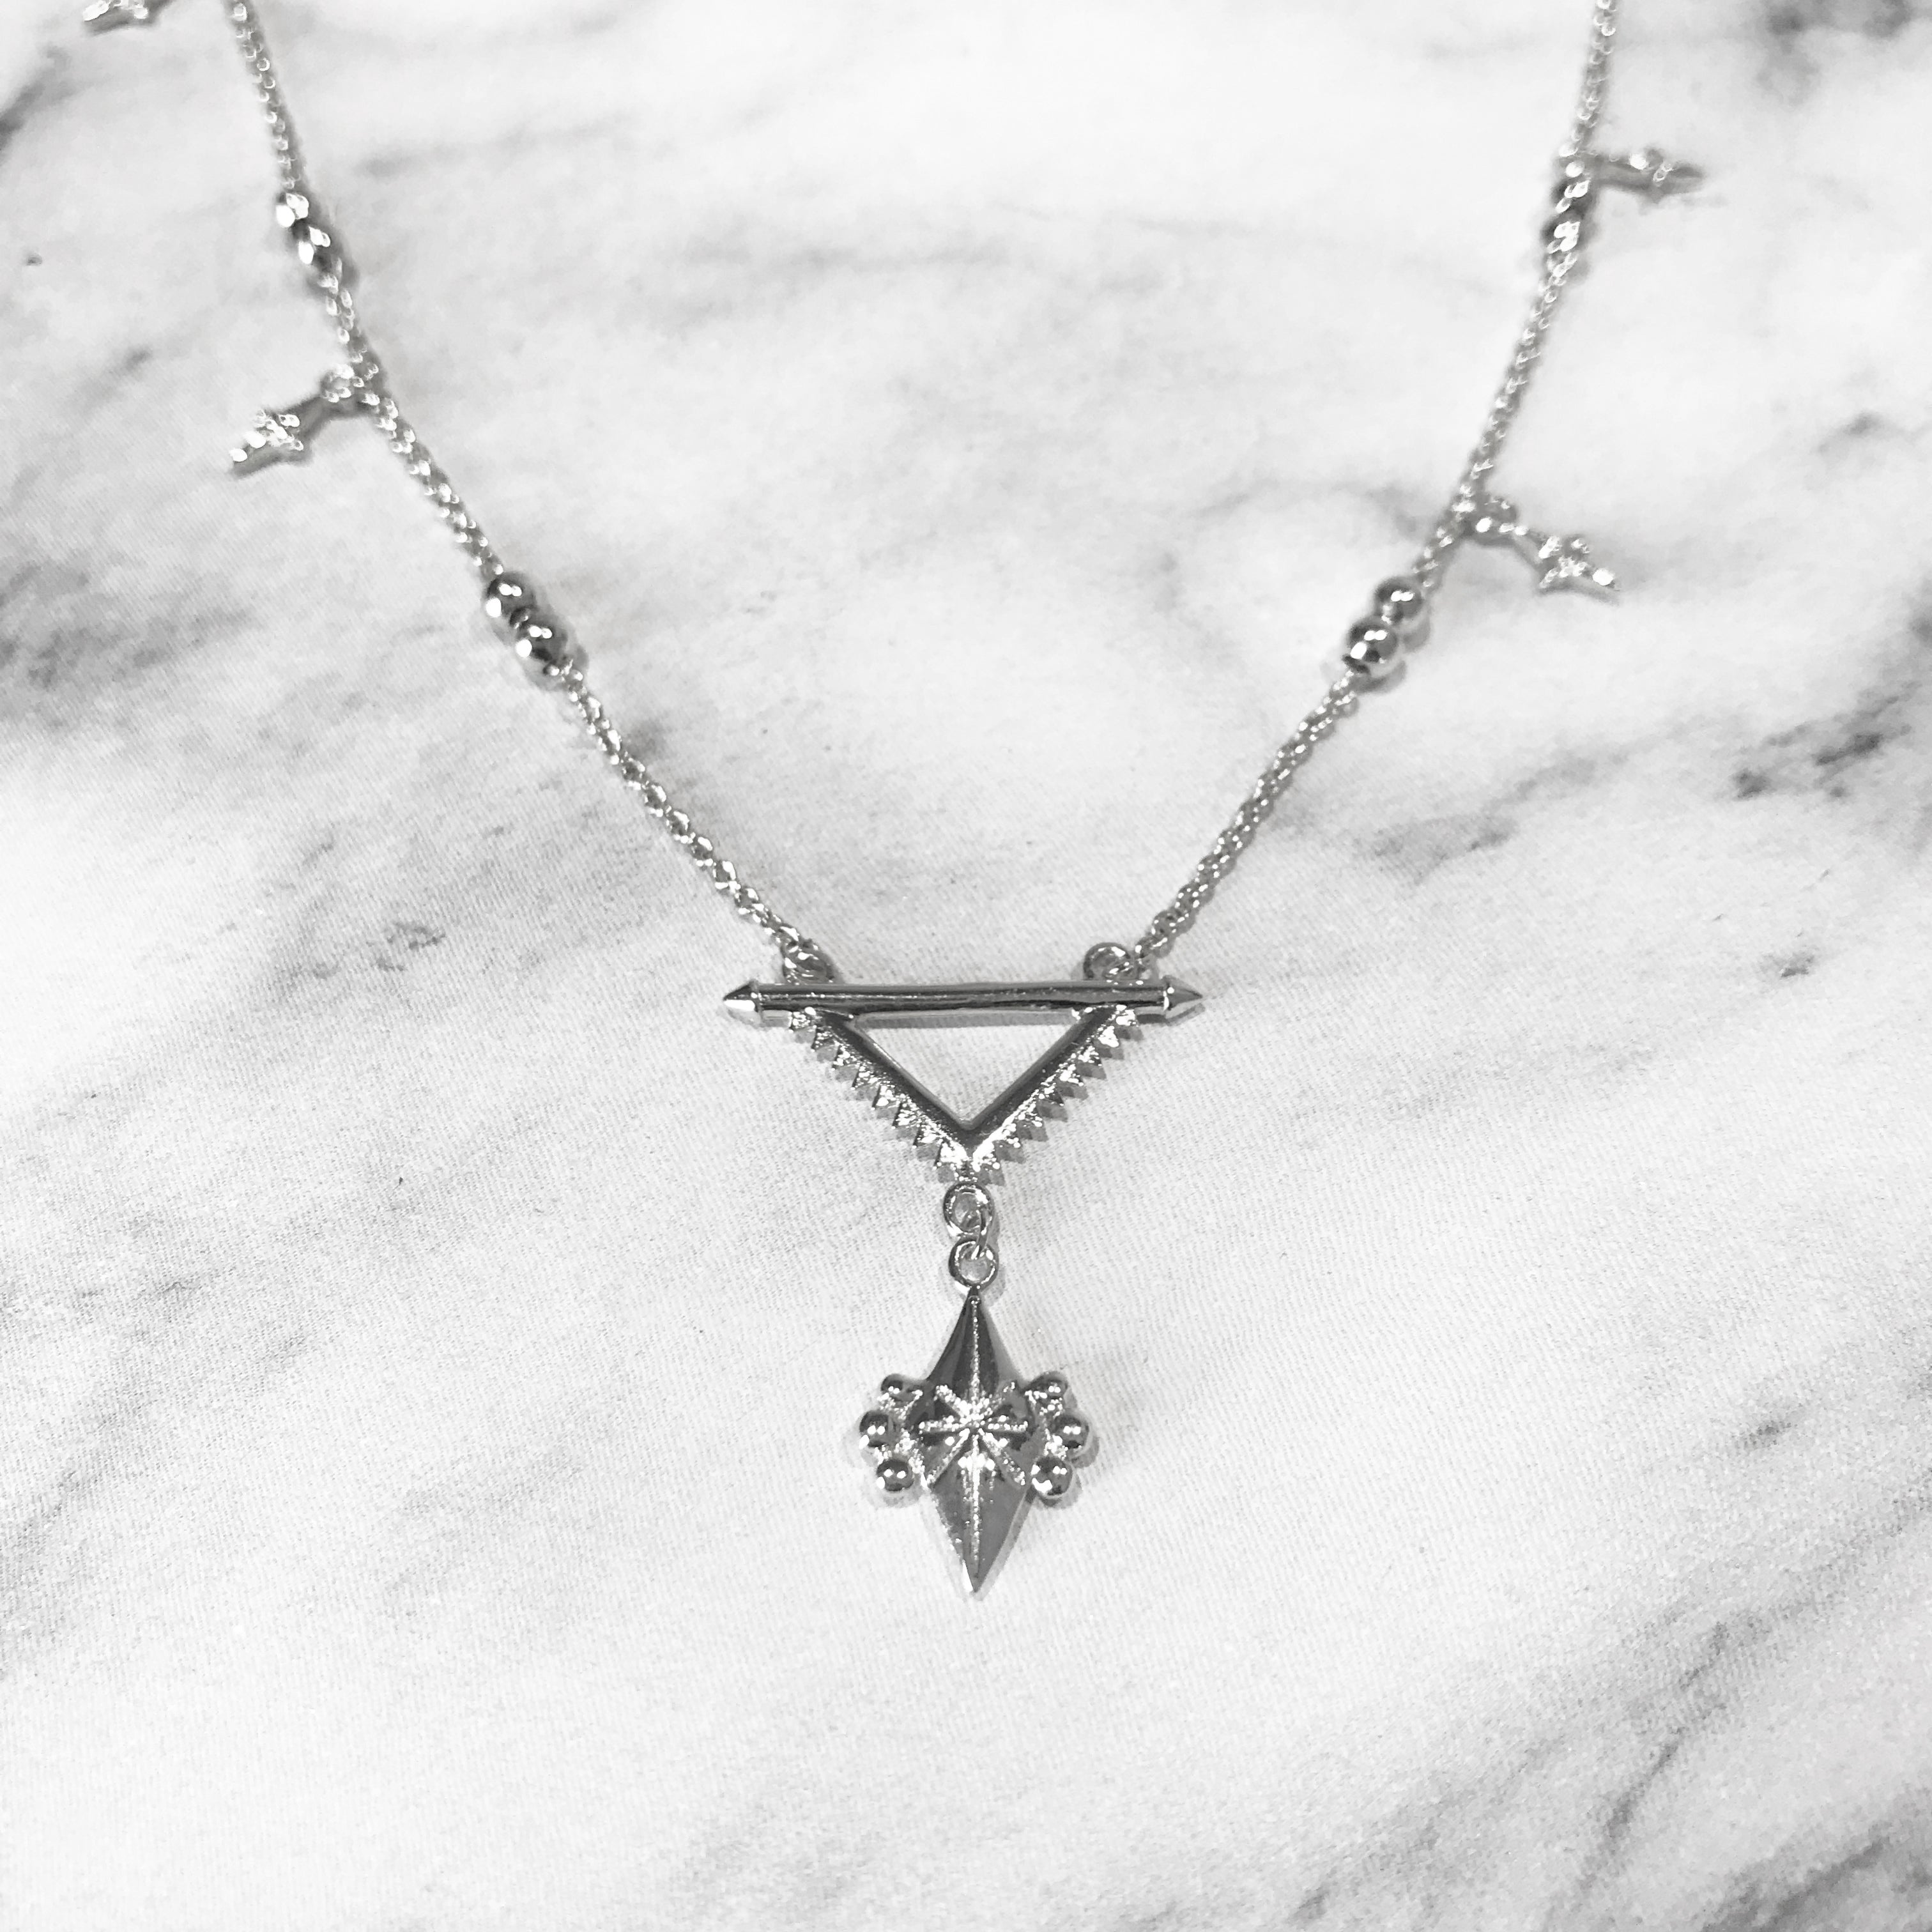 'SUPERNOVA' Necklace in Silver